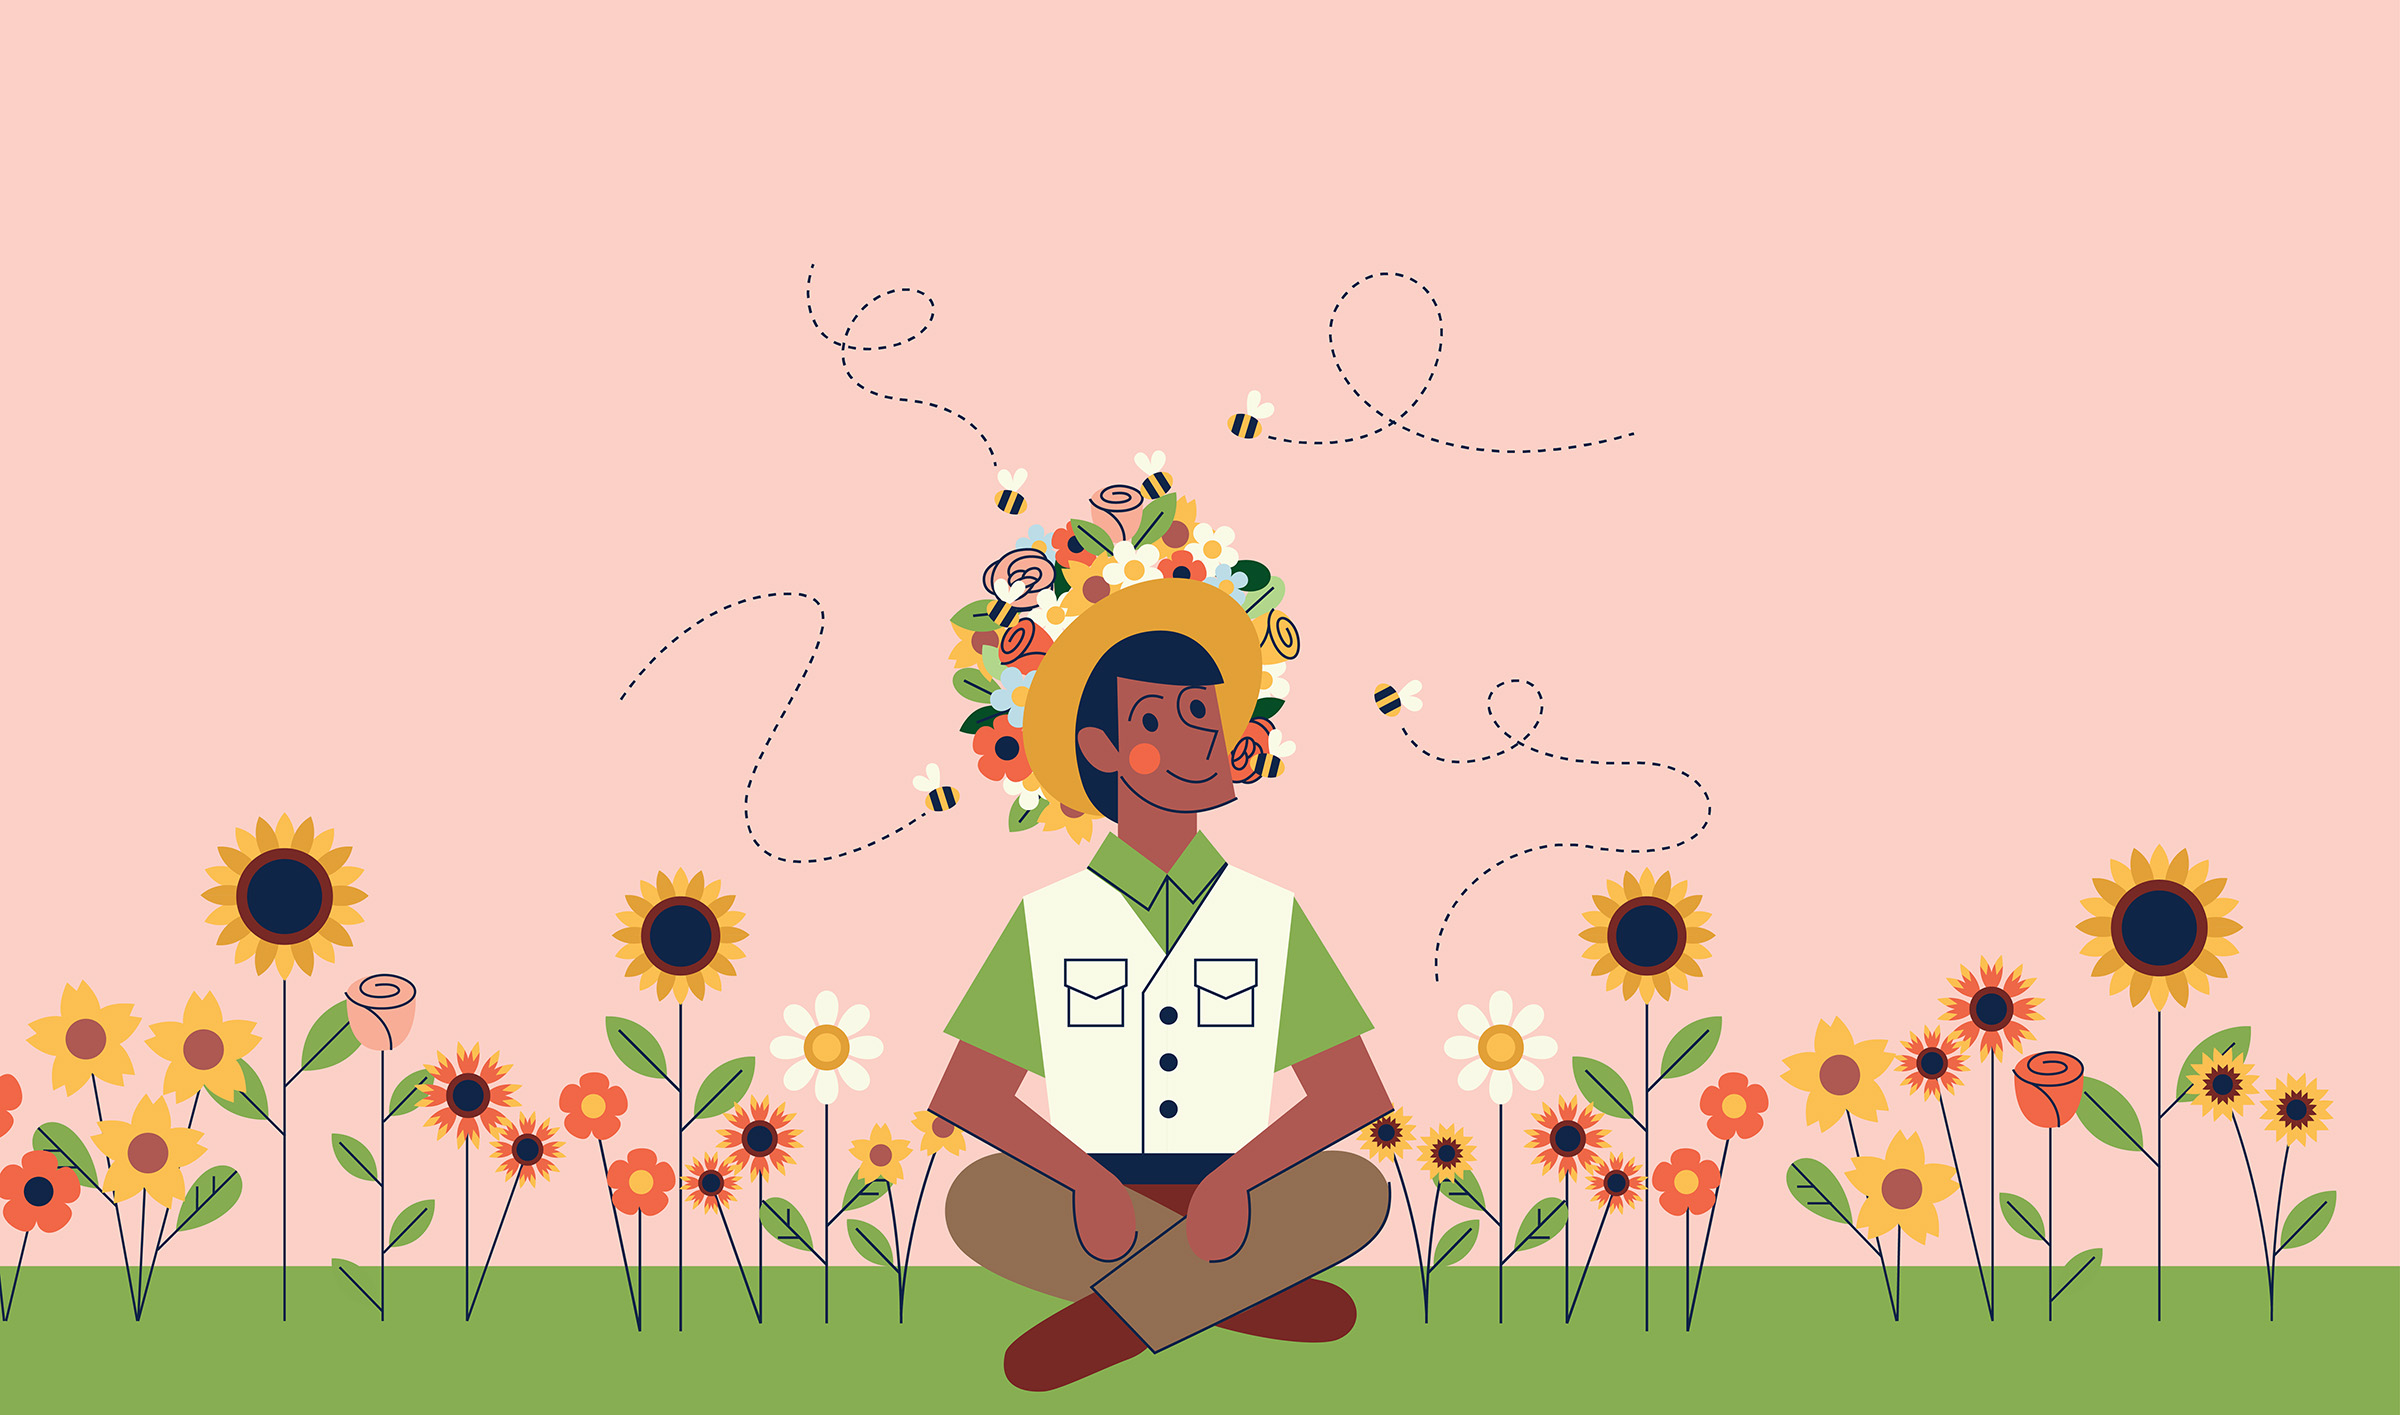 An illustration of a man in a flower hat sitting in the park with some bees.